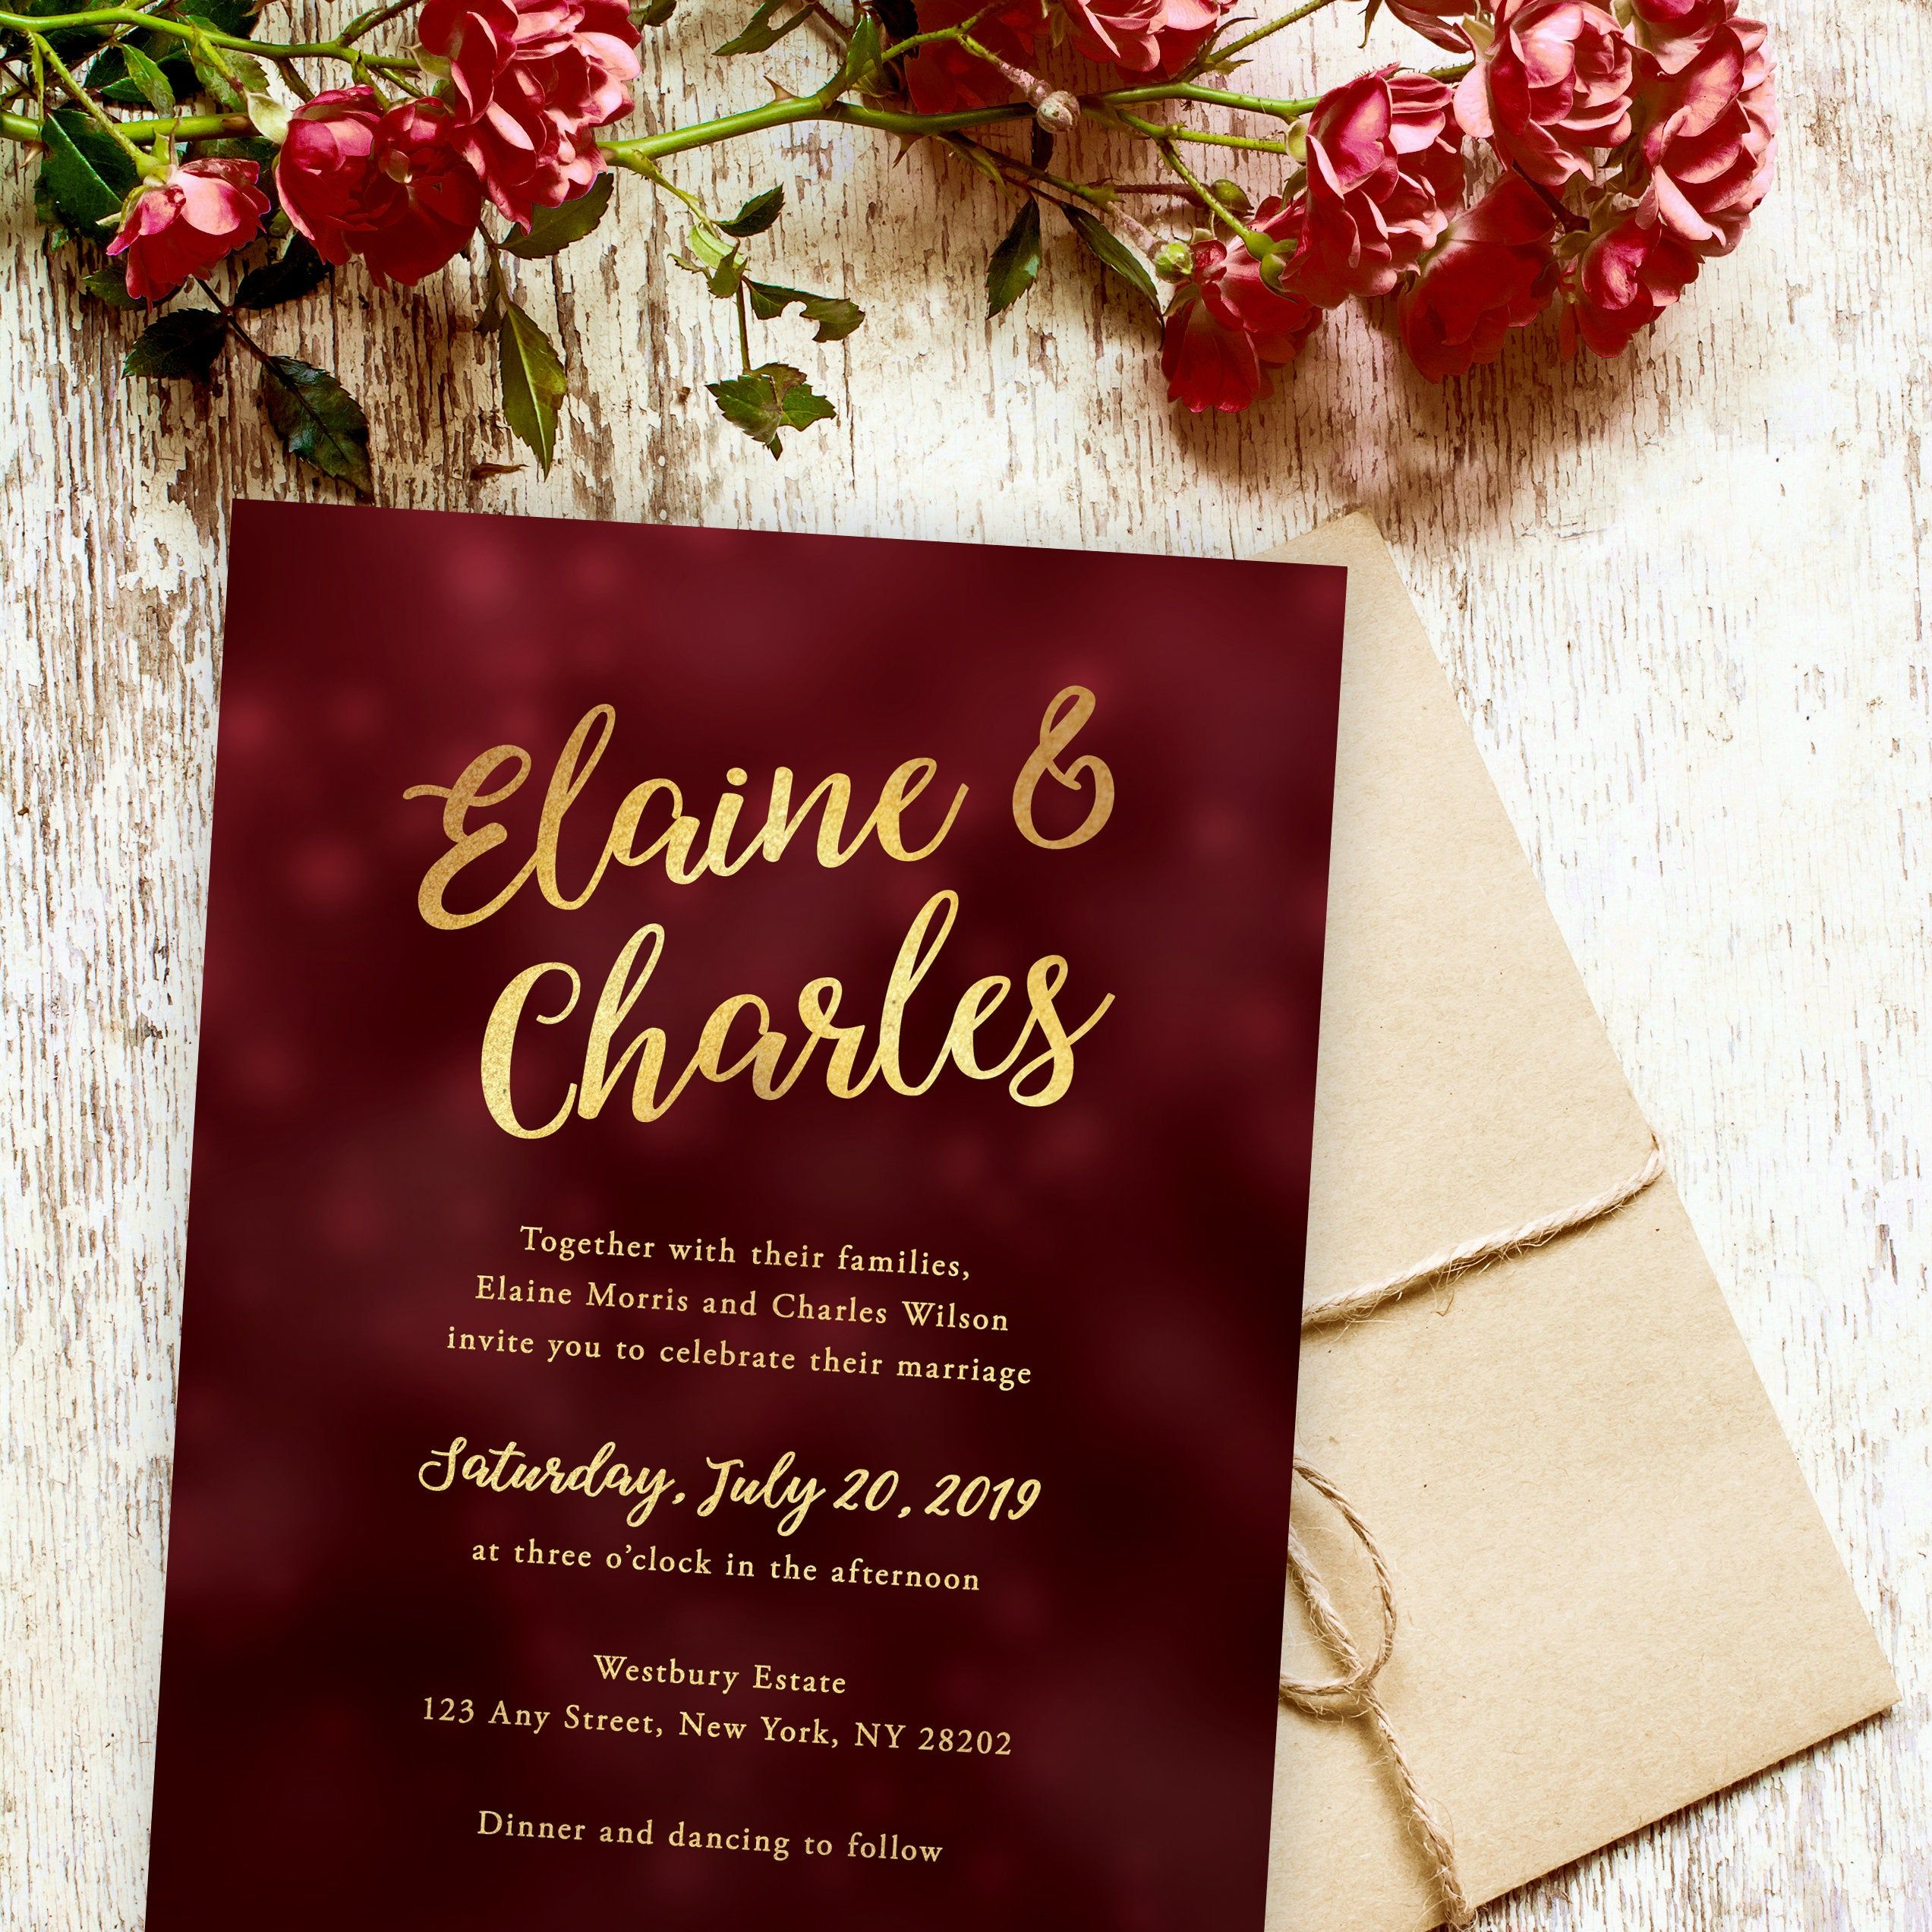 This burgundy and gold wedding invitation set includes matching